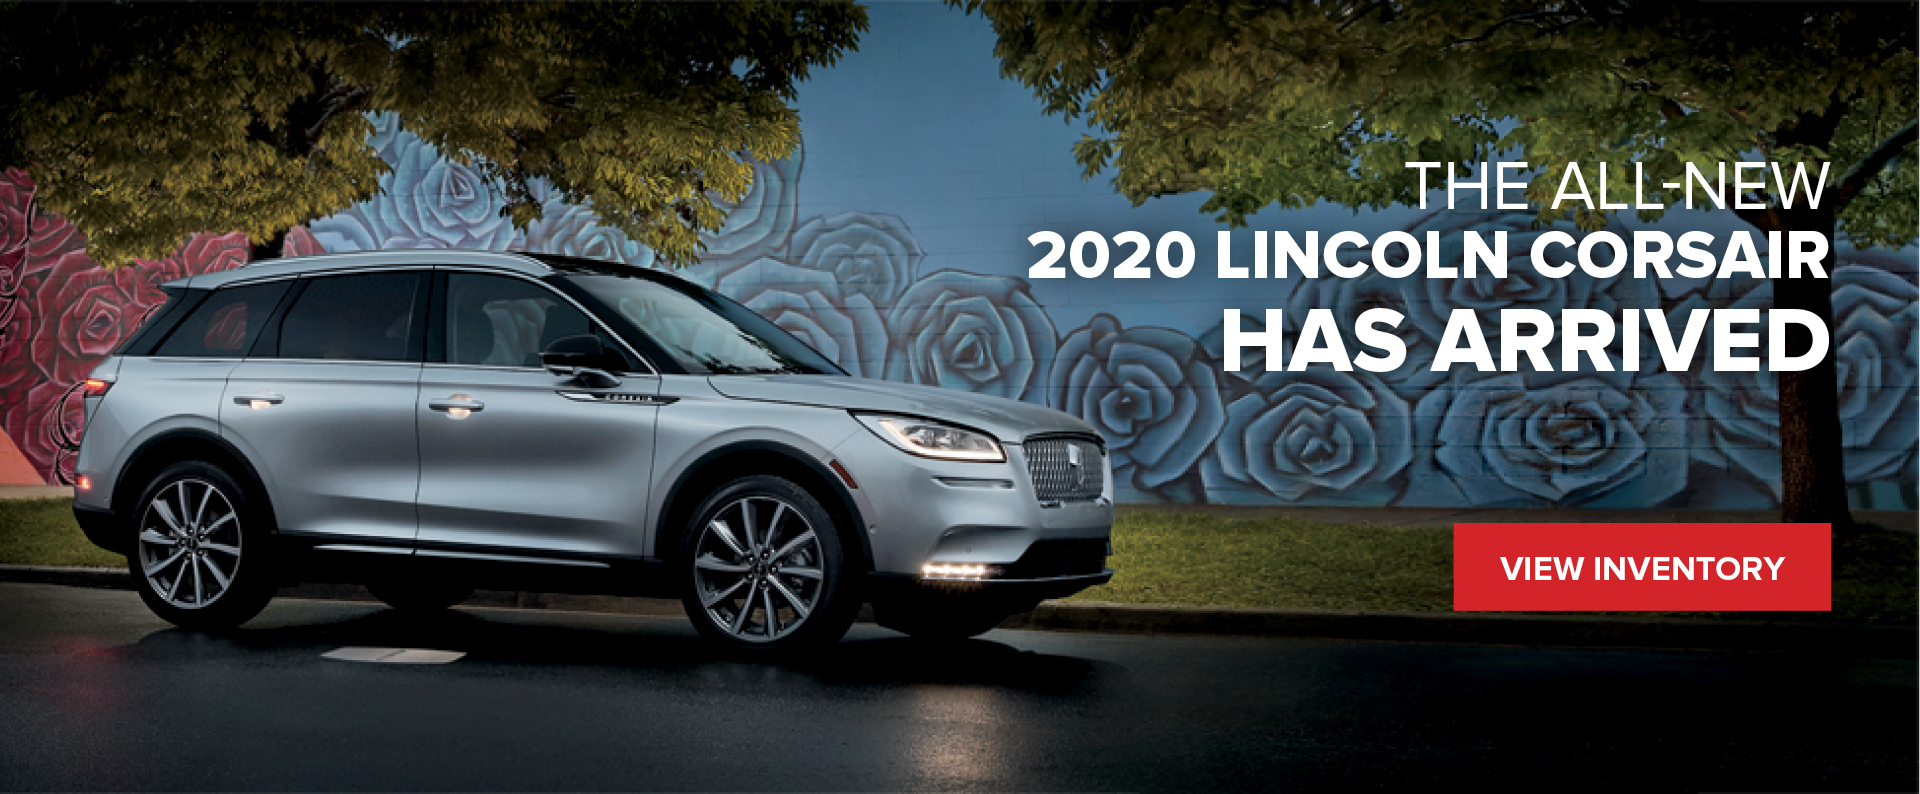 The All-New 2020 Lincoln Corsair Has Arrived